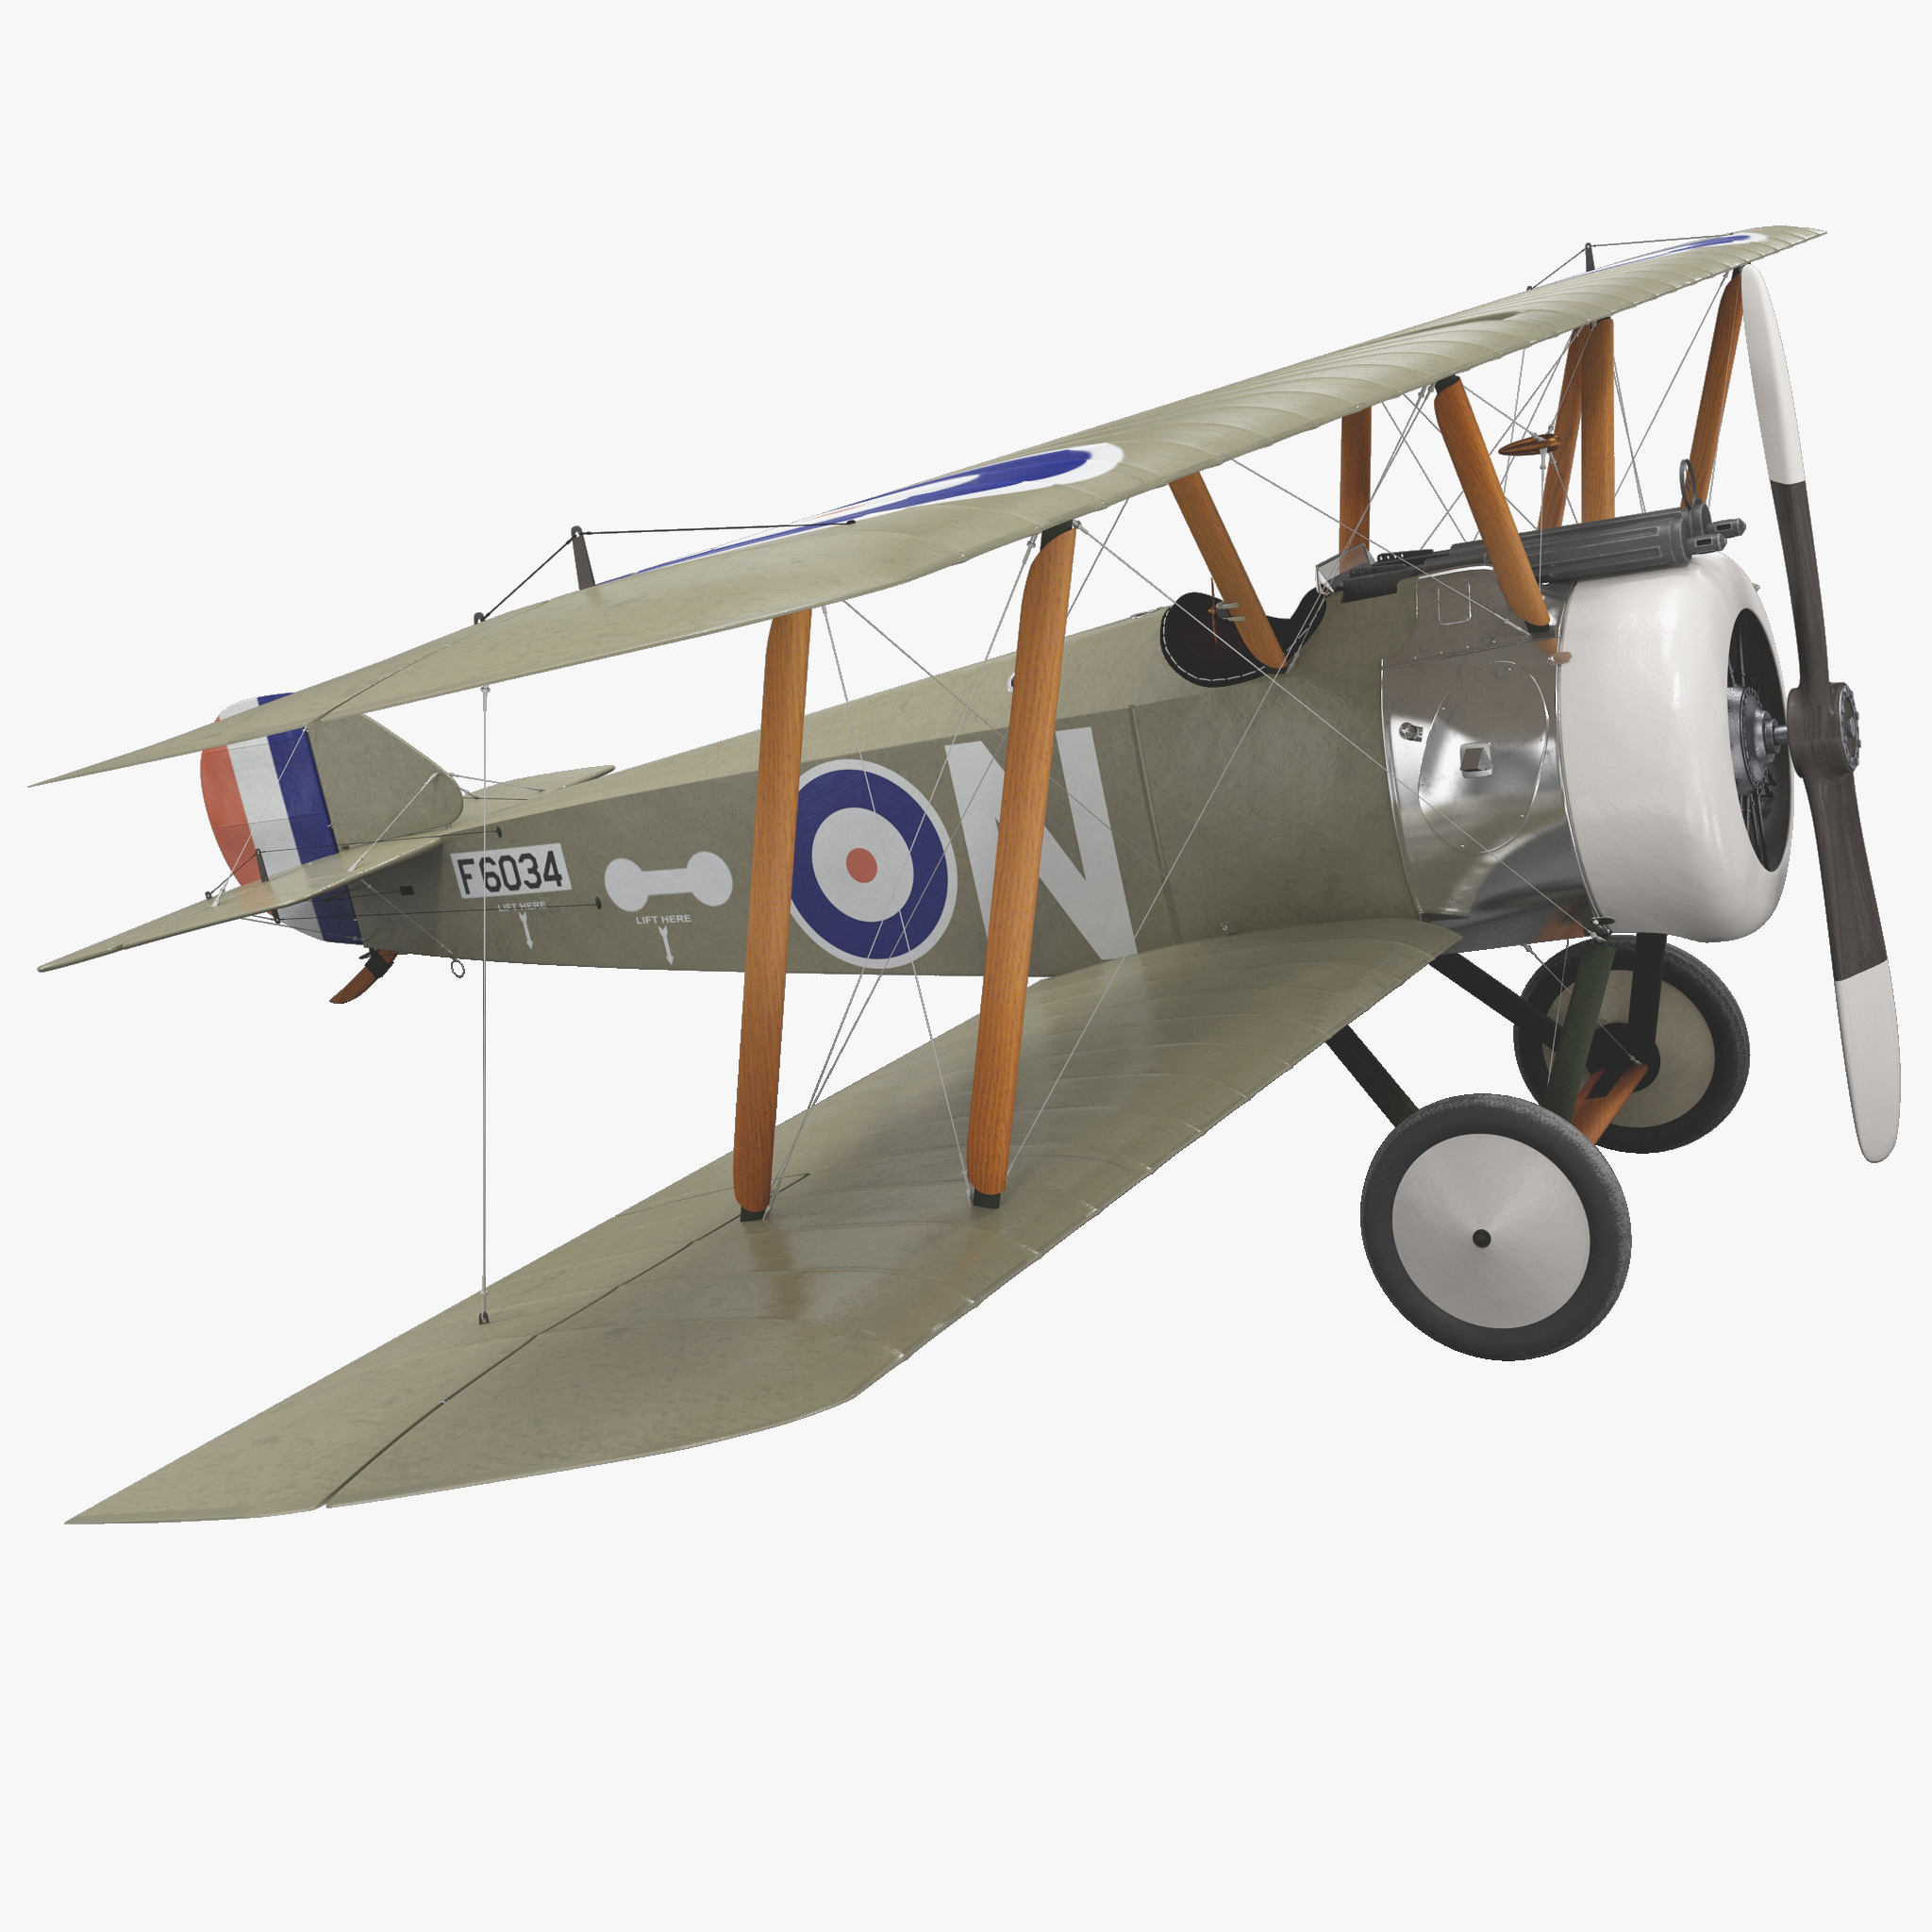 British WWI Biplane Fighter Sopwith F1 Camel Rigged_217.jpg